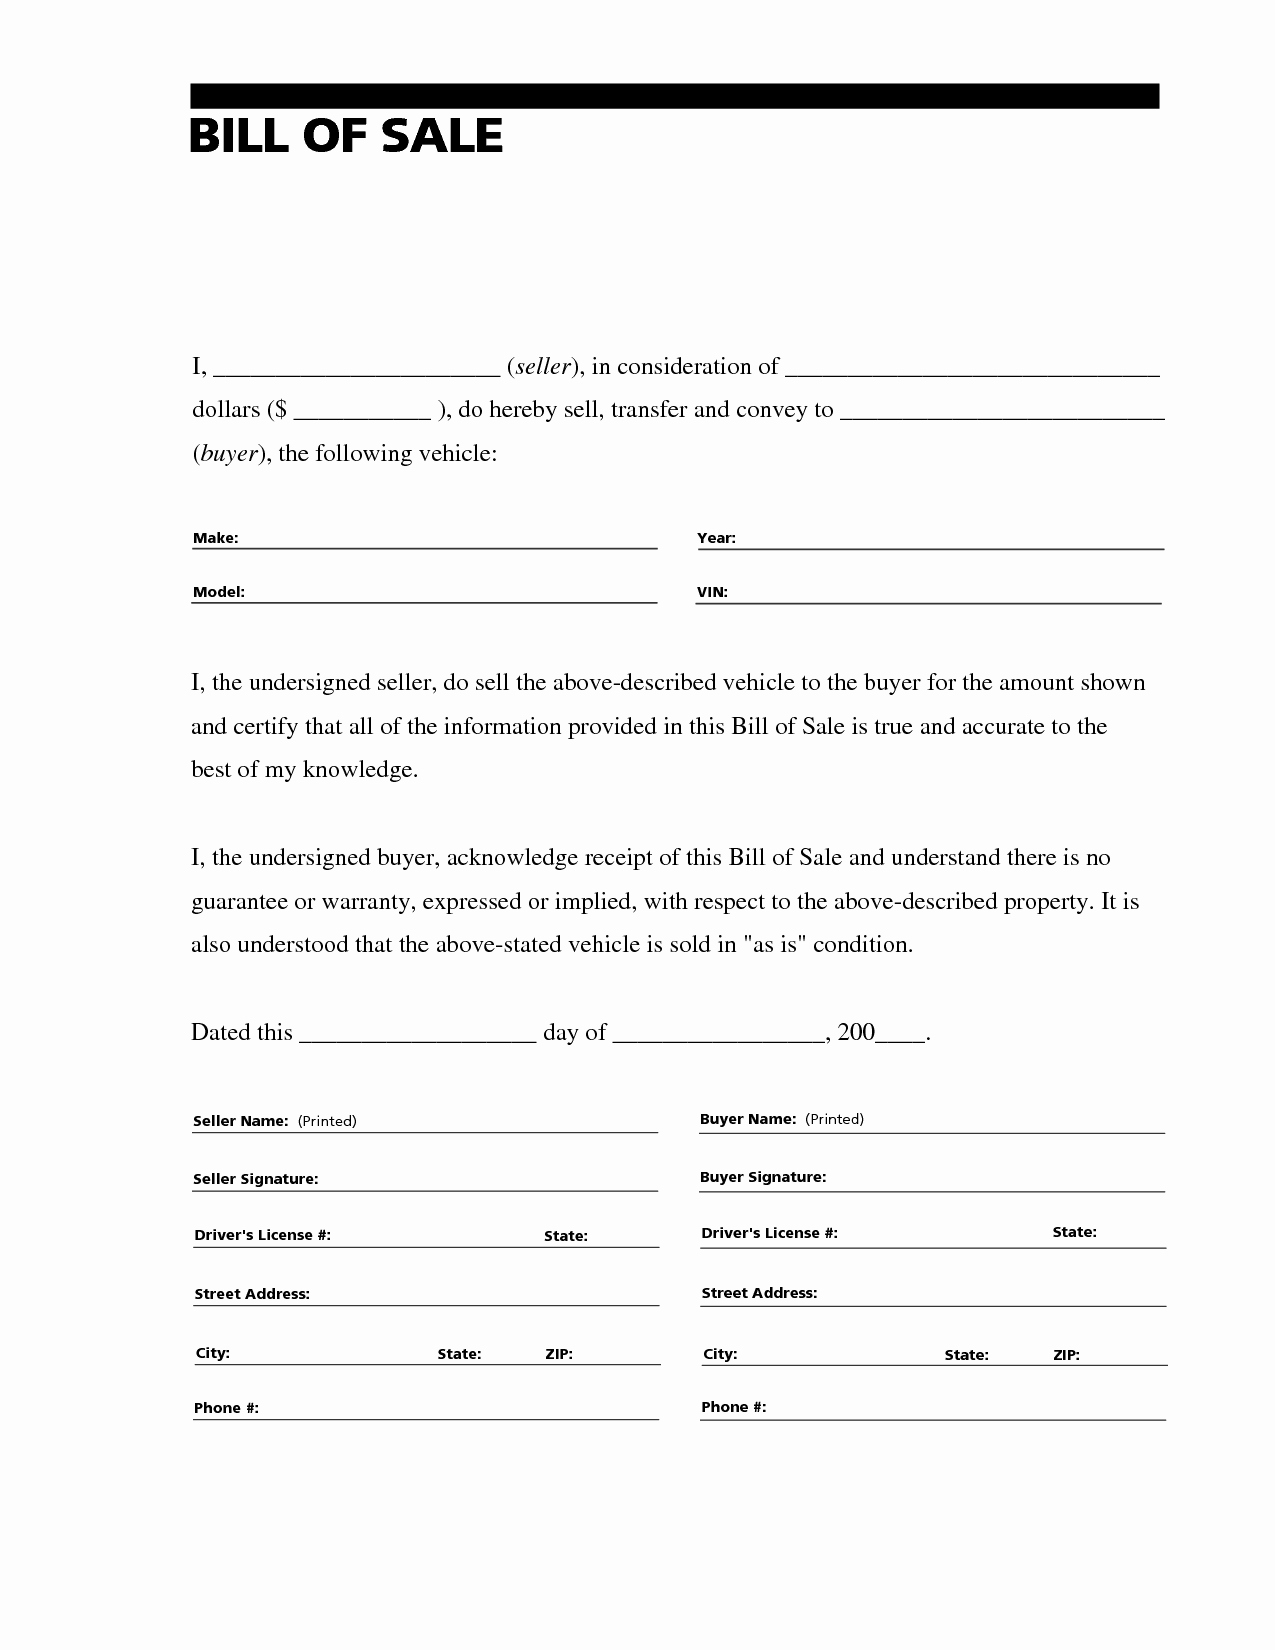 Bill Of Sale Document Template Fresh Free Printable Bill Of Sale Templates form Generic